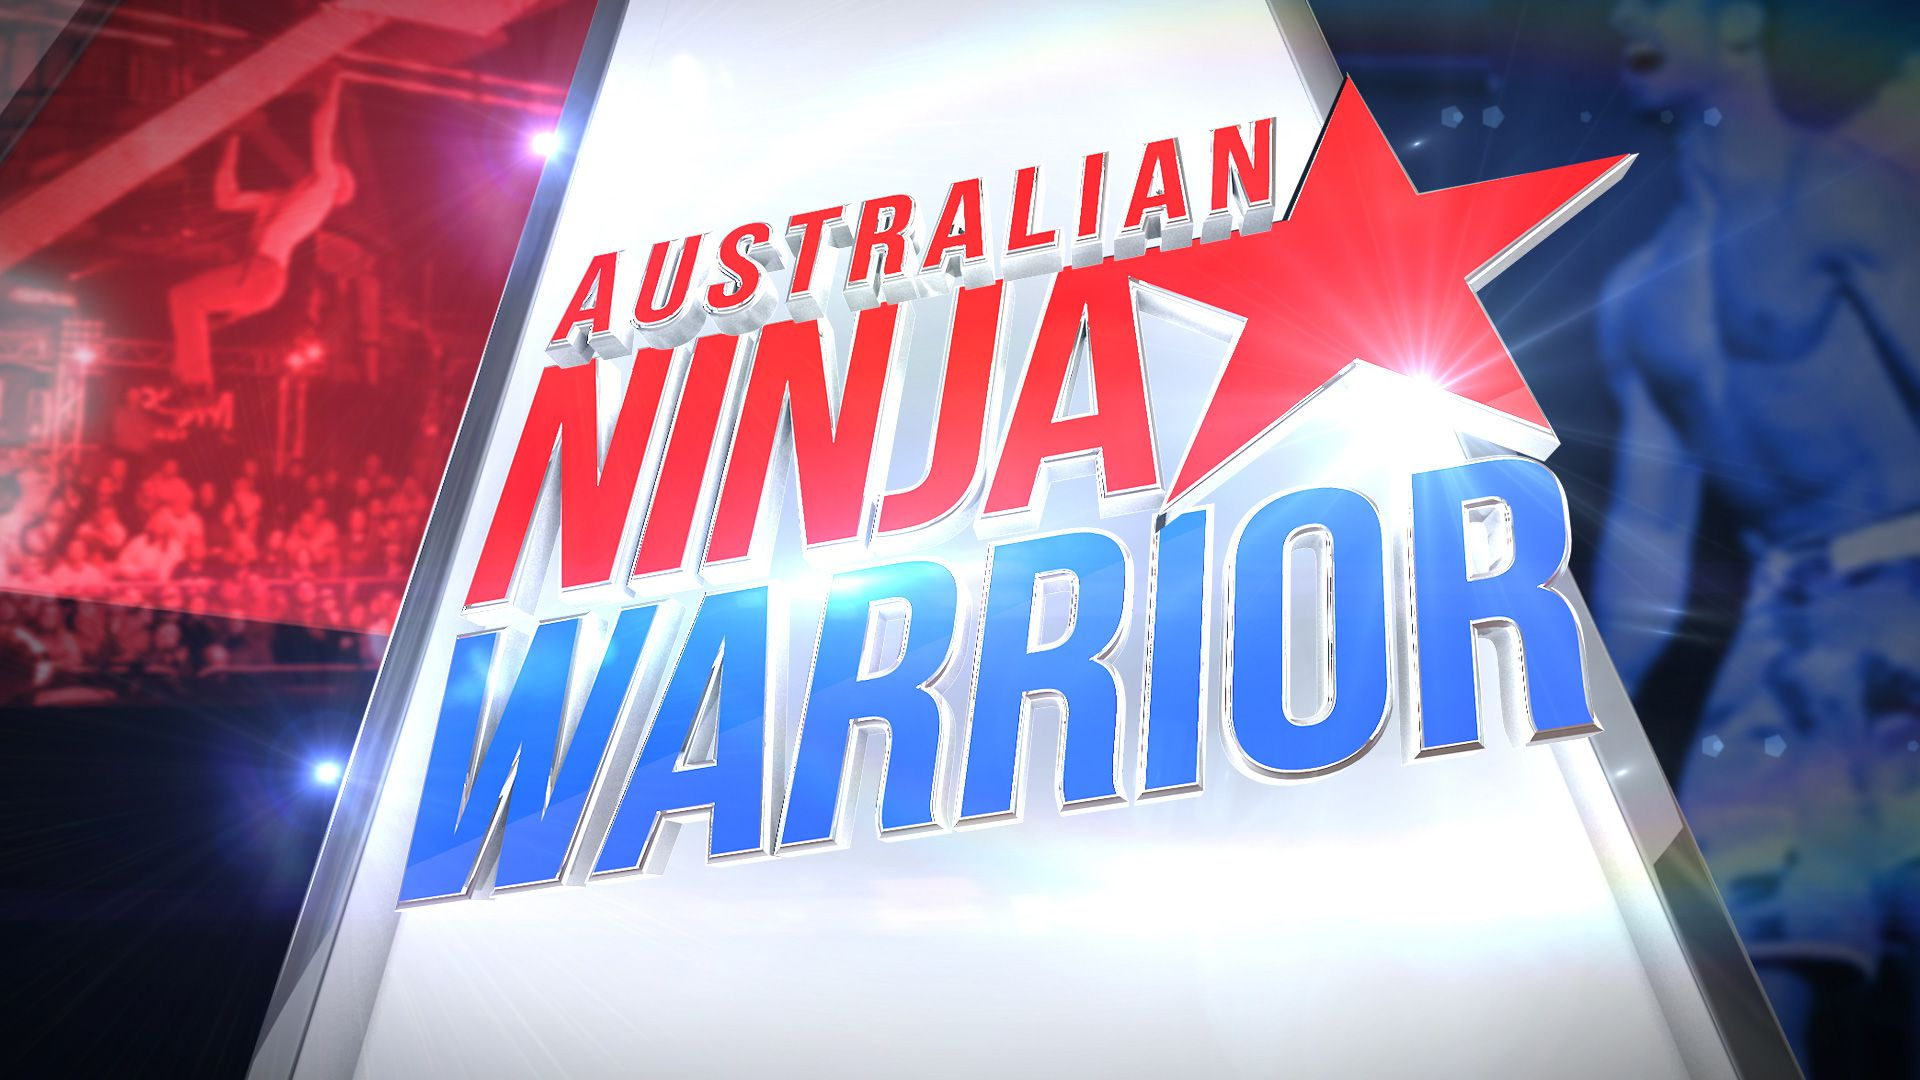 Australian Ninja Warrior Season 2: Application Details